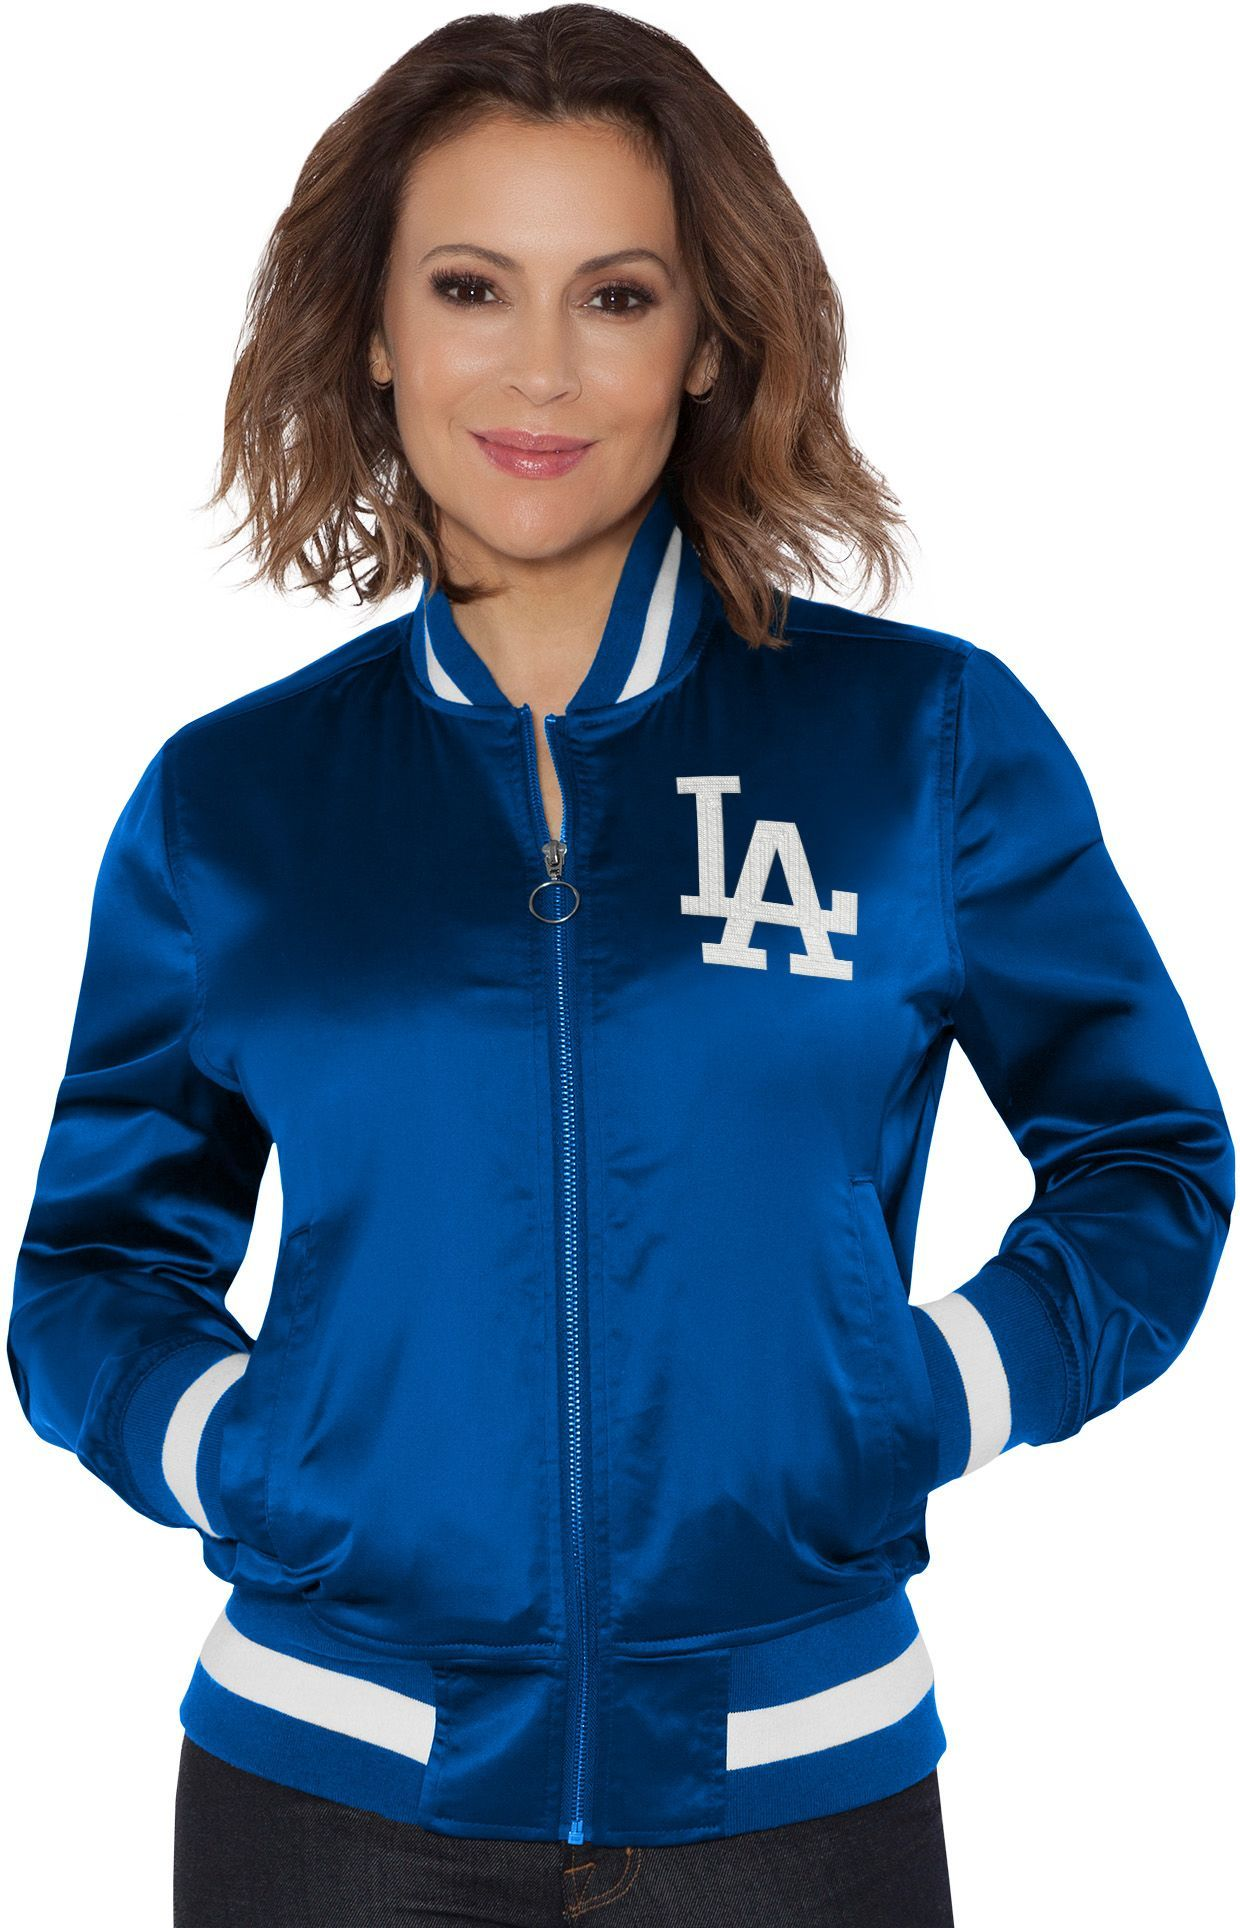 08c0ae075 Touch by Alyssa Milano Women's Los Angeles Dodgers Bomber Jacket | DICK'S  Sporting GoodsProposition 65 warning iconProposition 65 warning icon